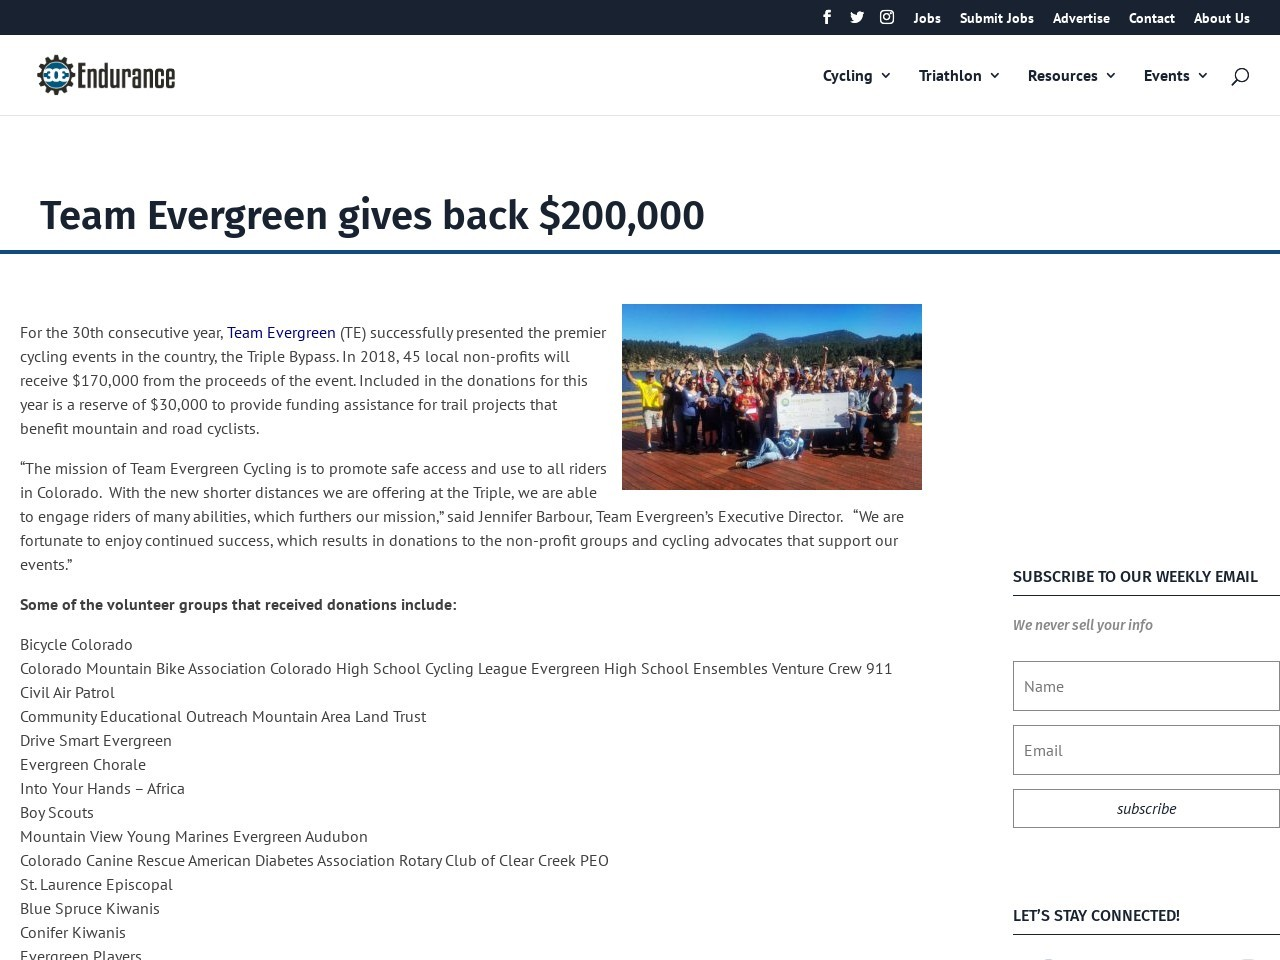 Team Evergreen gives back $200,000